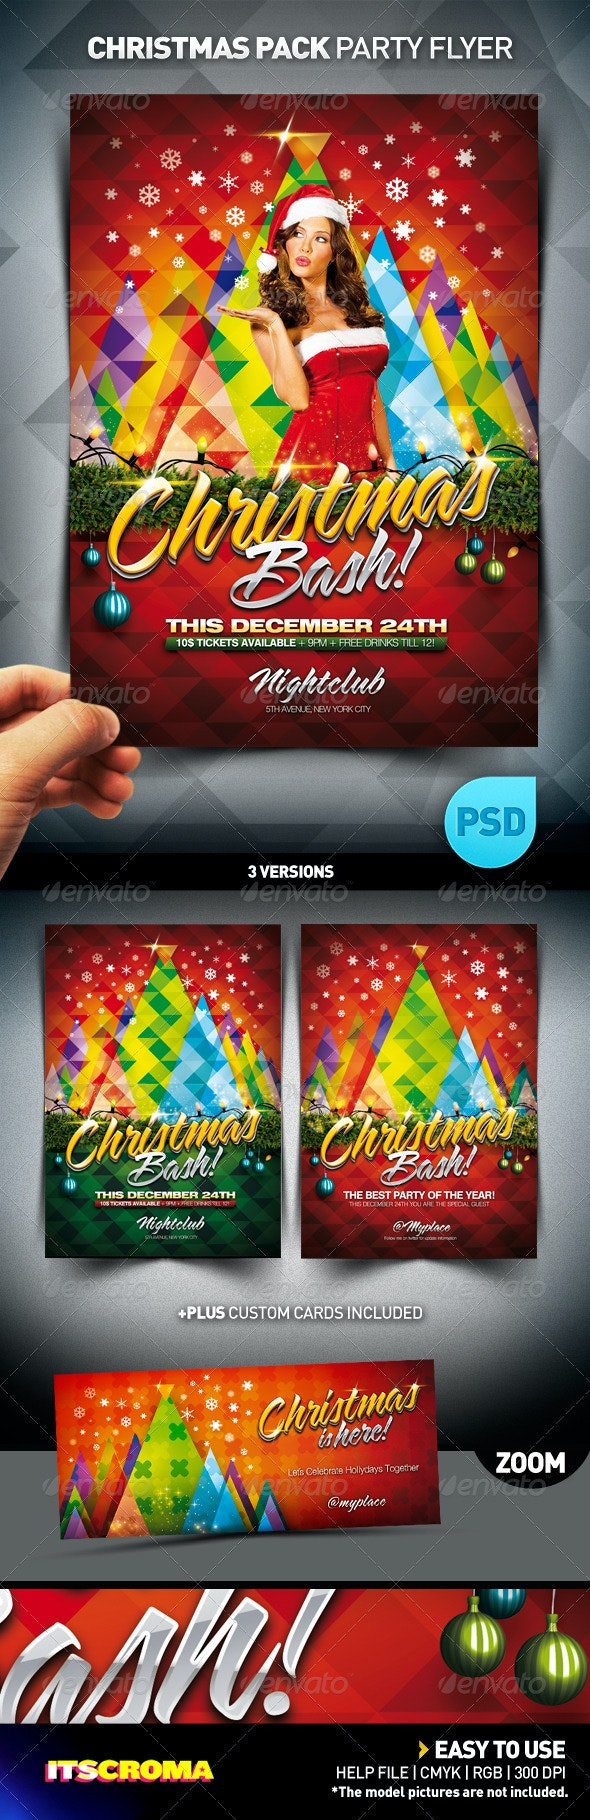 Christmas Bash Party Flyer Pack - Clubs & Parties Events